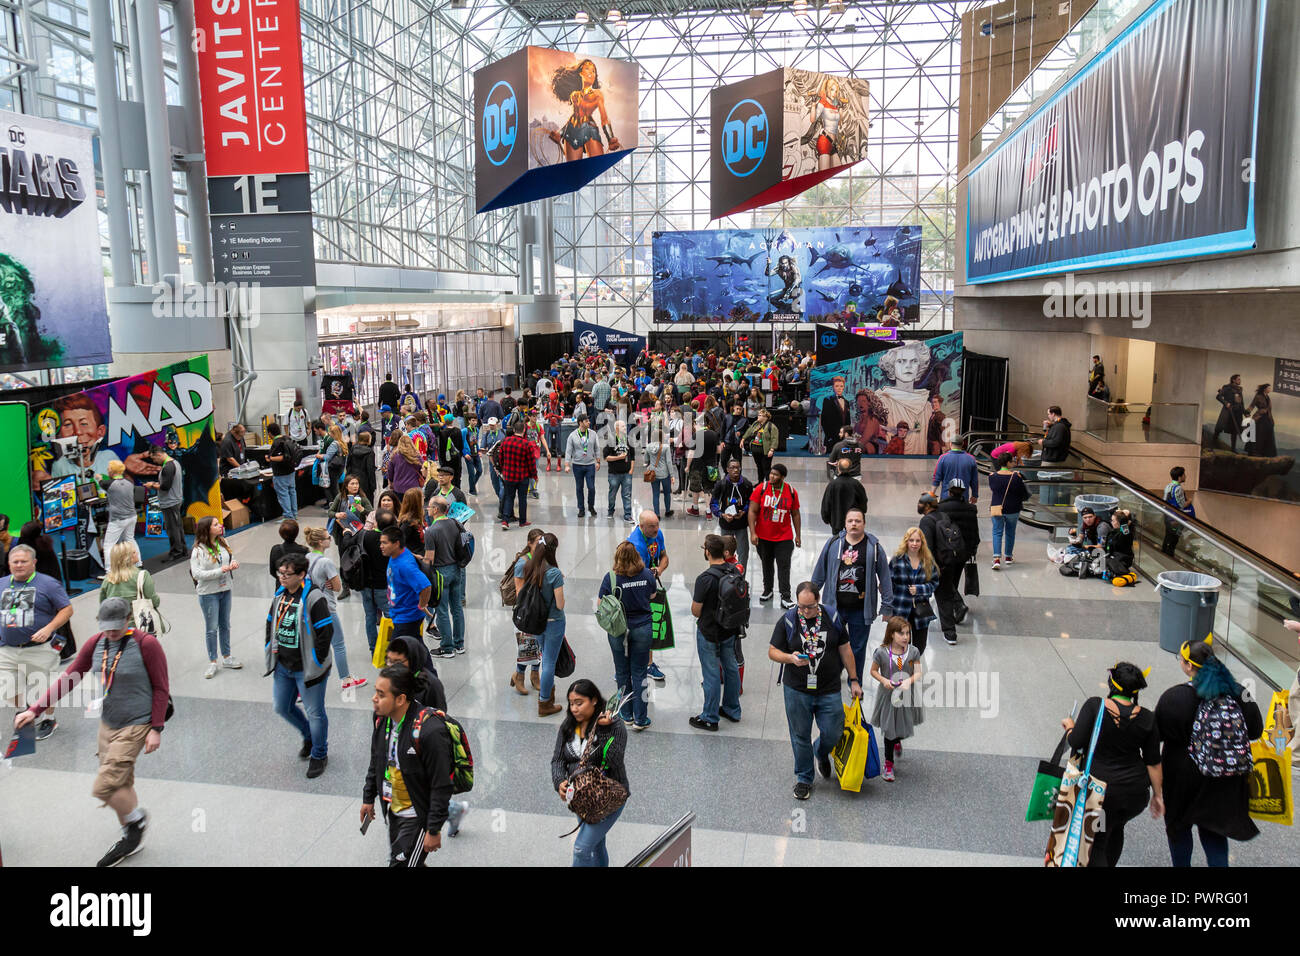 A crowd of visitors and fans to the New York Comic Con comic book and movie convention. - Stock Image